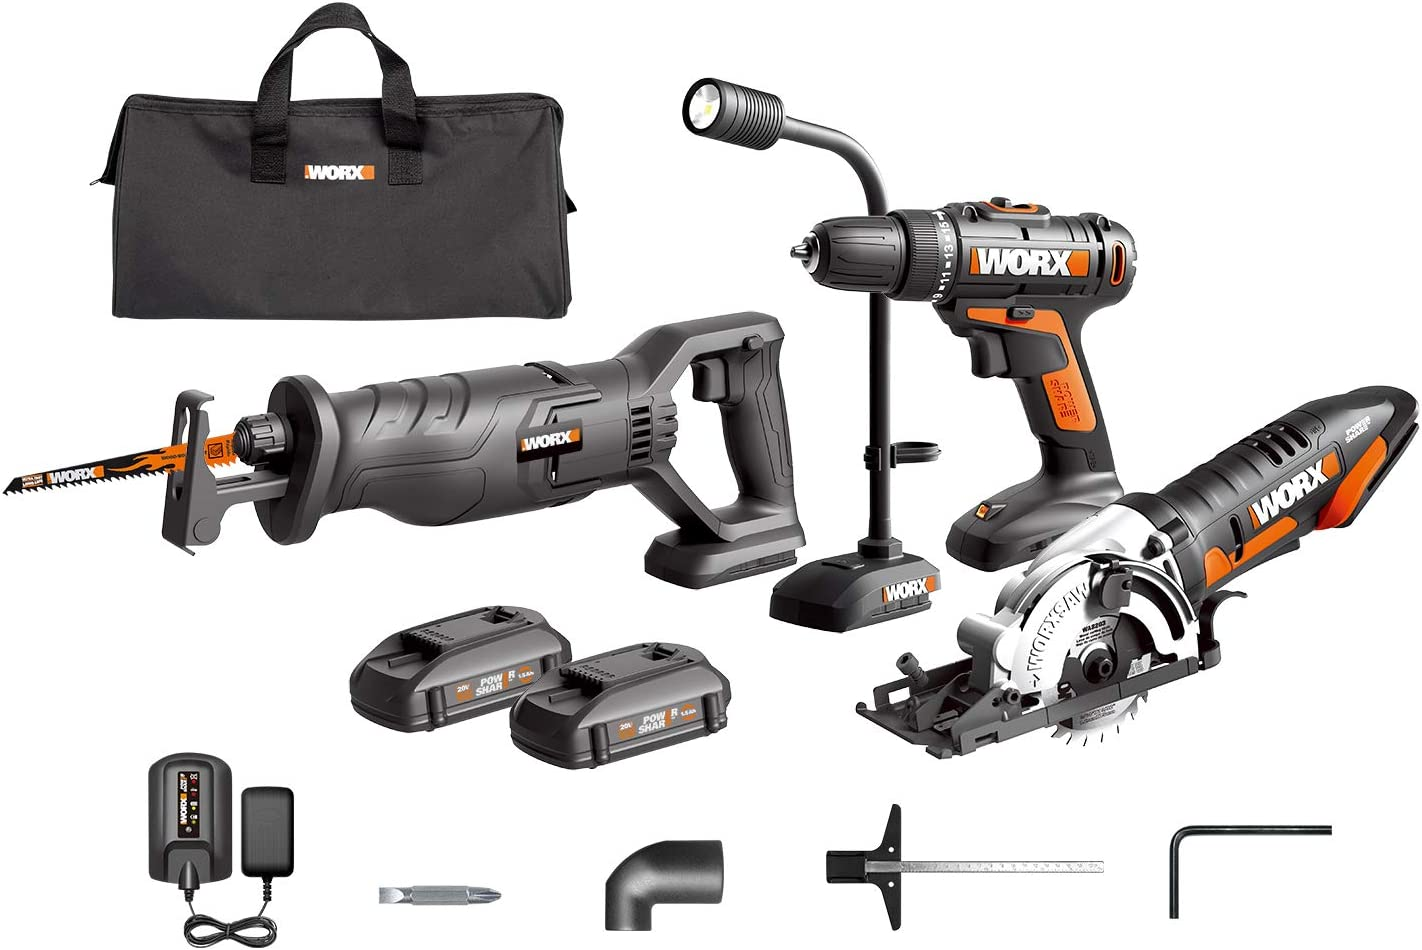 WORX WX943L 20V Cordles Drill Driver WX101L, 20V Lithium Circular Worxsaw WX523L, 20V Cordless Reciprocating Saw WX500L and 20V Flexible LED light WX028L Combo Kit